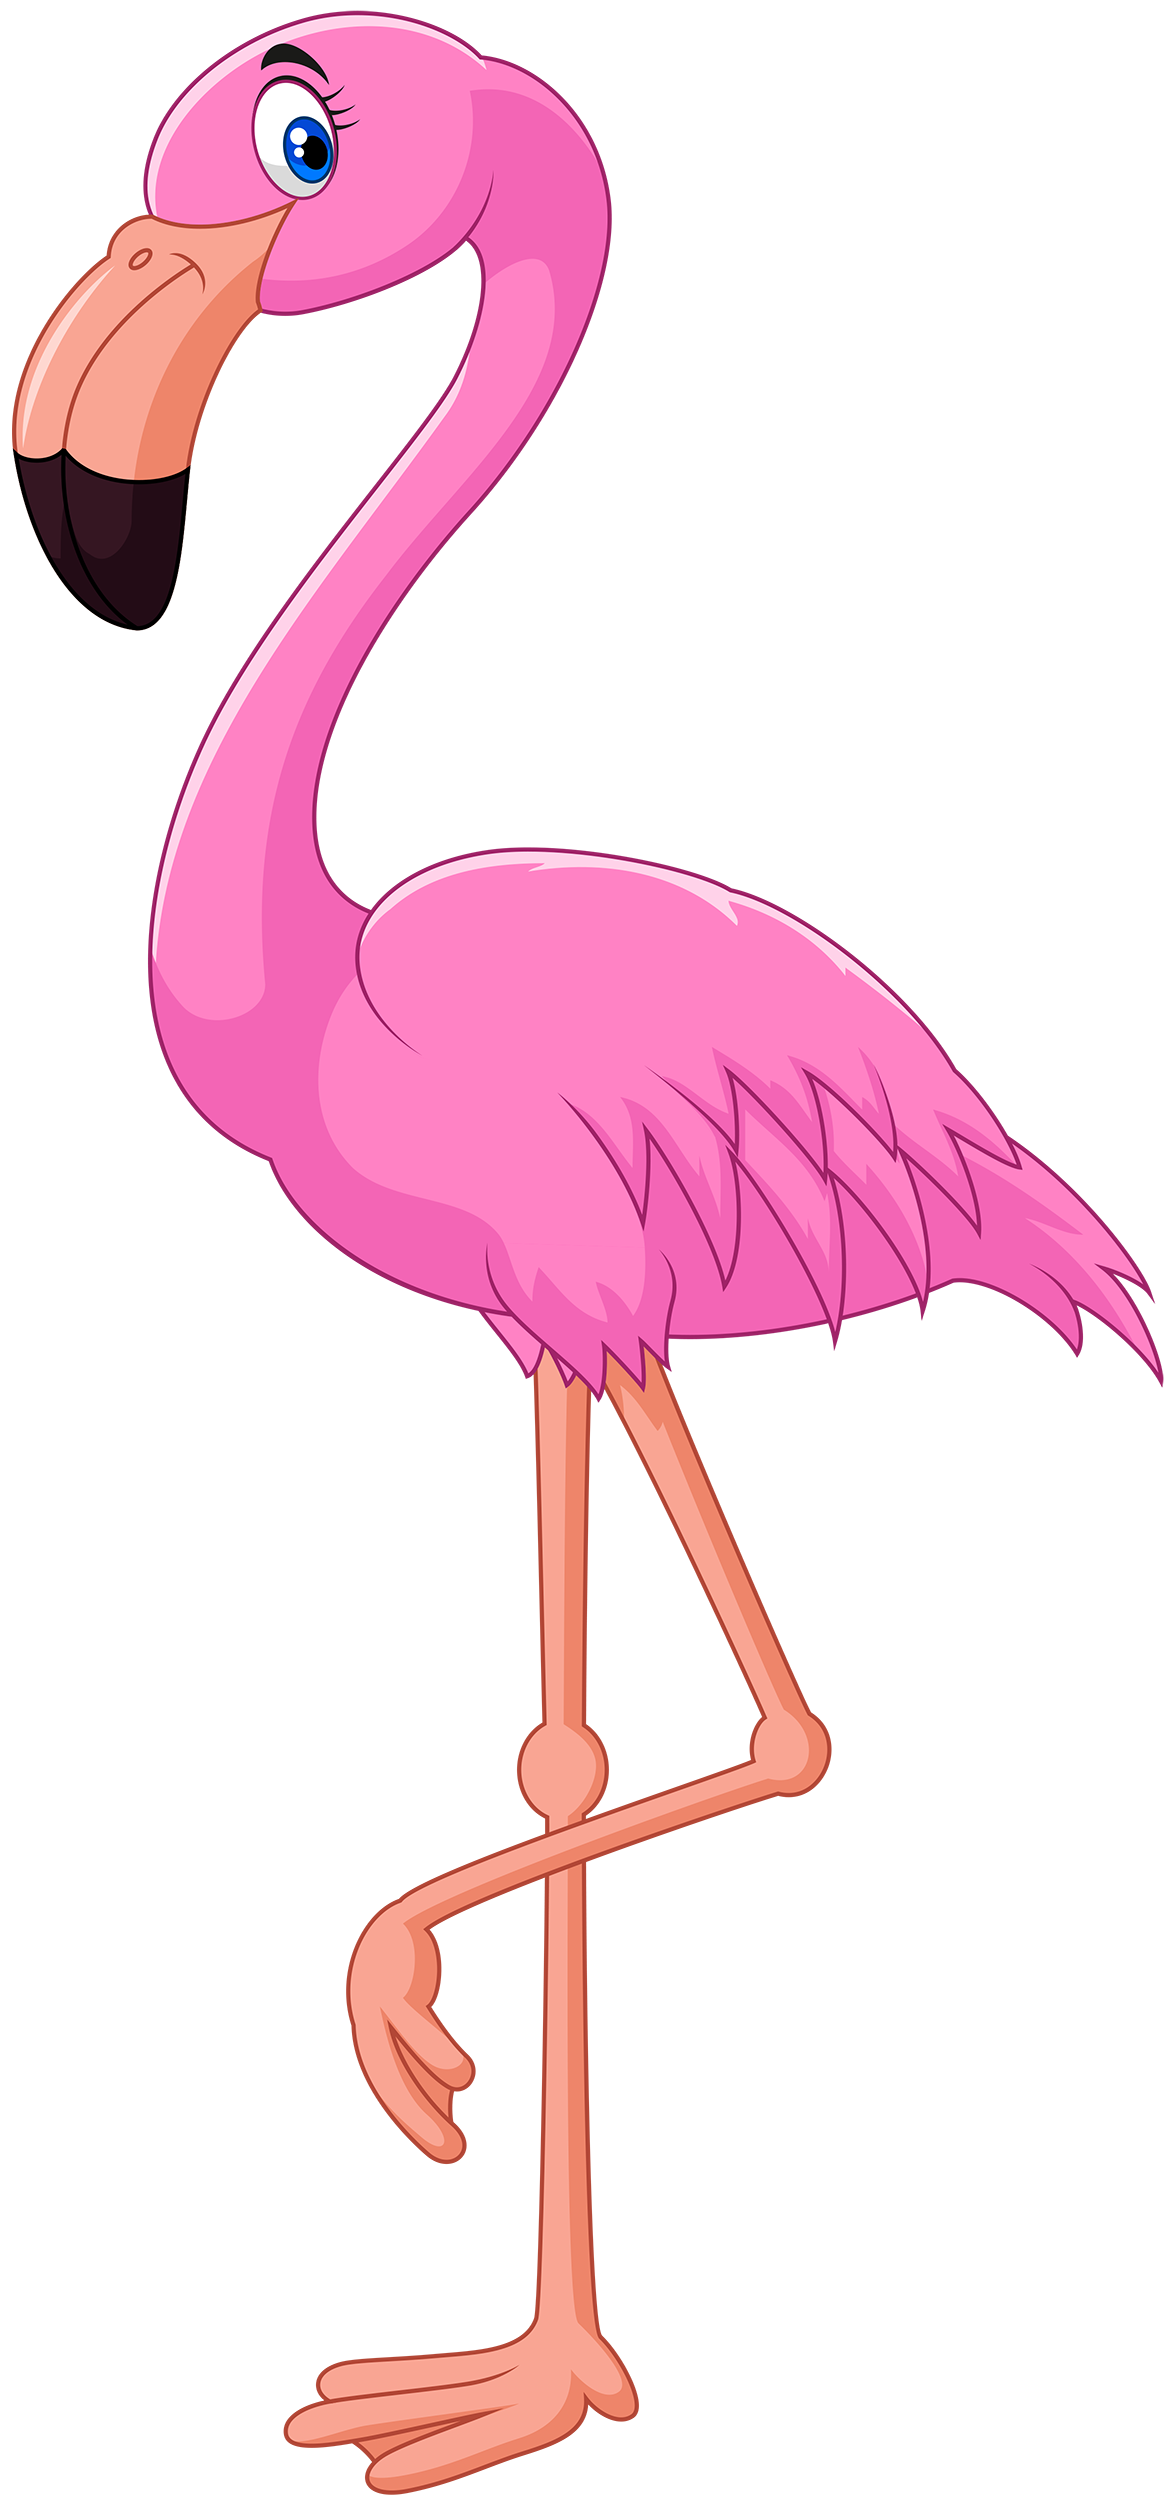 Glasses clipart pink. Flamingo web theme pinterest